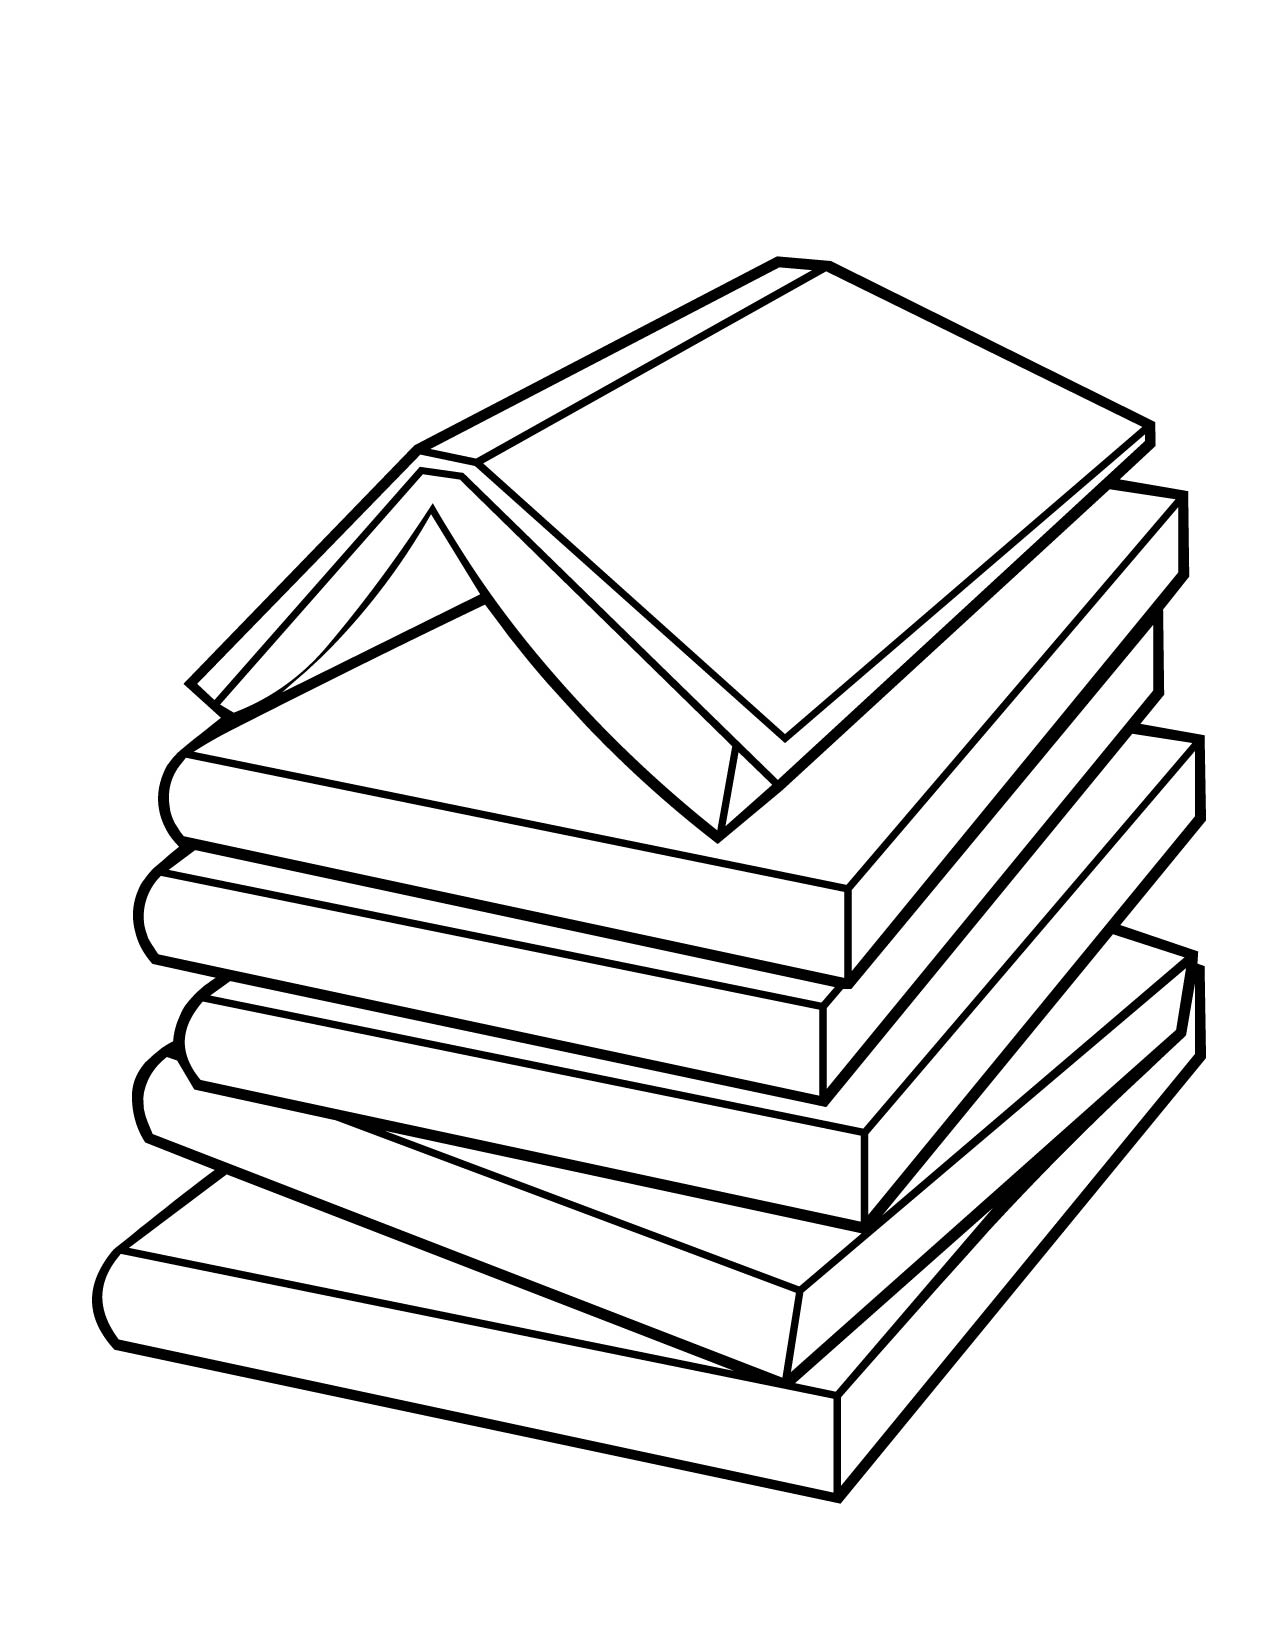 Book Coloring Pages To Download And Print For Free Book Colouring Pages